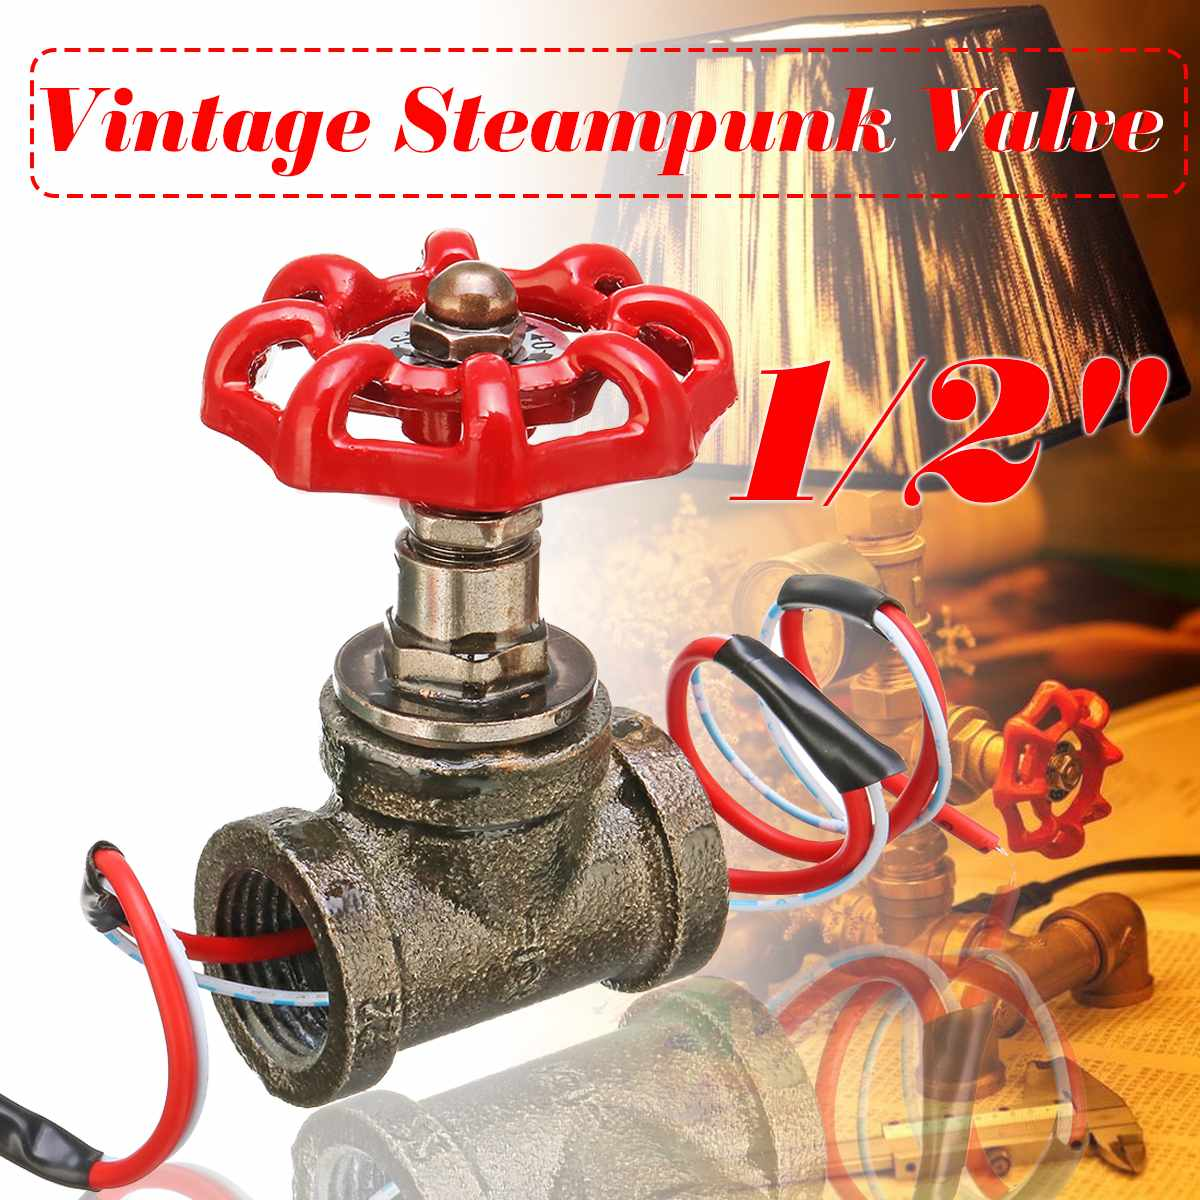 NEW 1/2 Inch Stop Valve Light Vintage Steampunk Switch With Wire For Water Pipe Lamps Lamp Loft Style Iron Valve Vintage Lamp